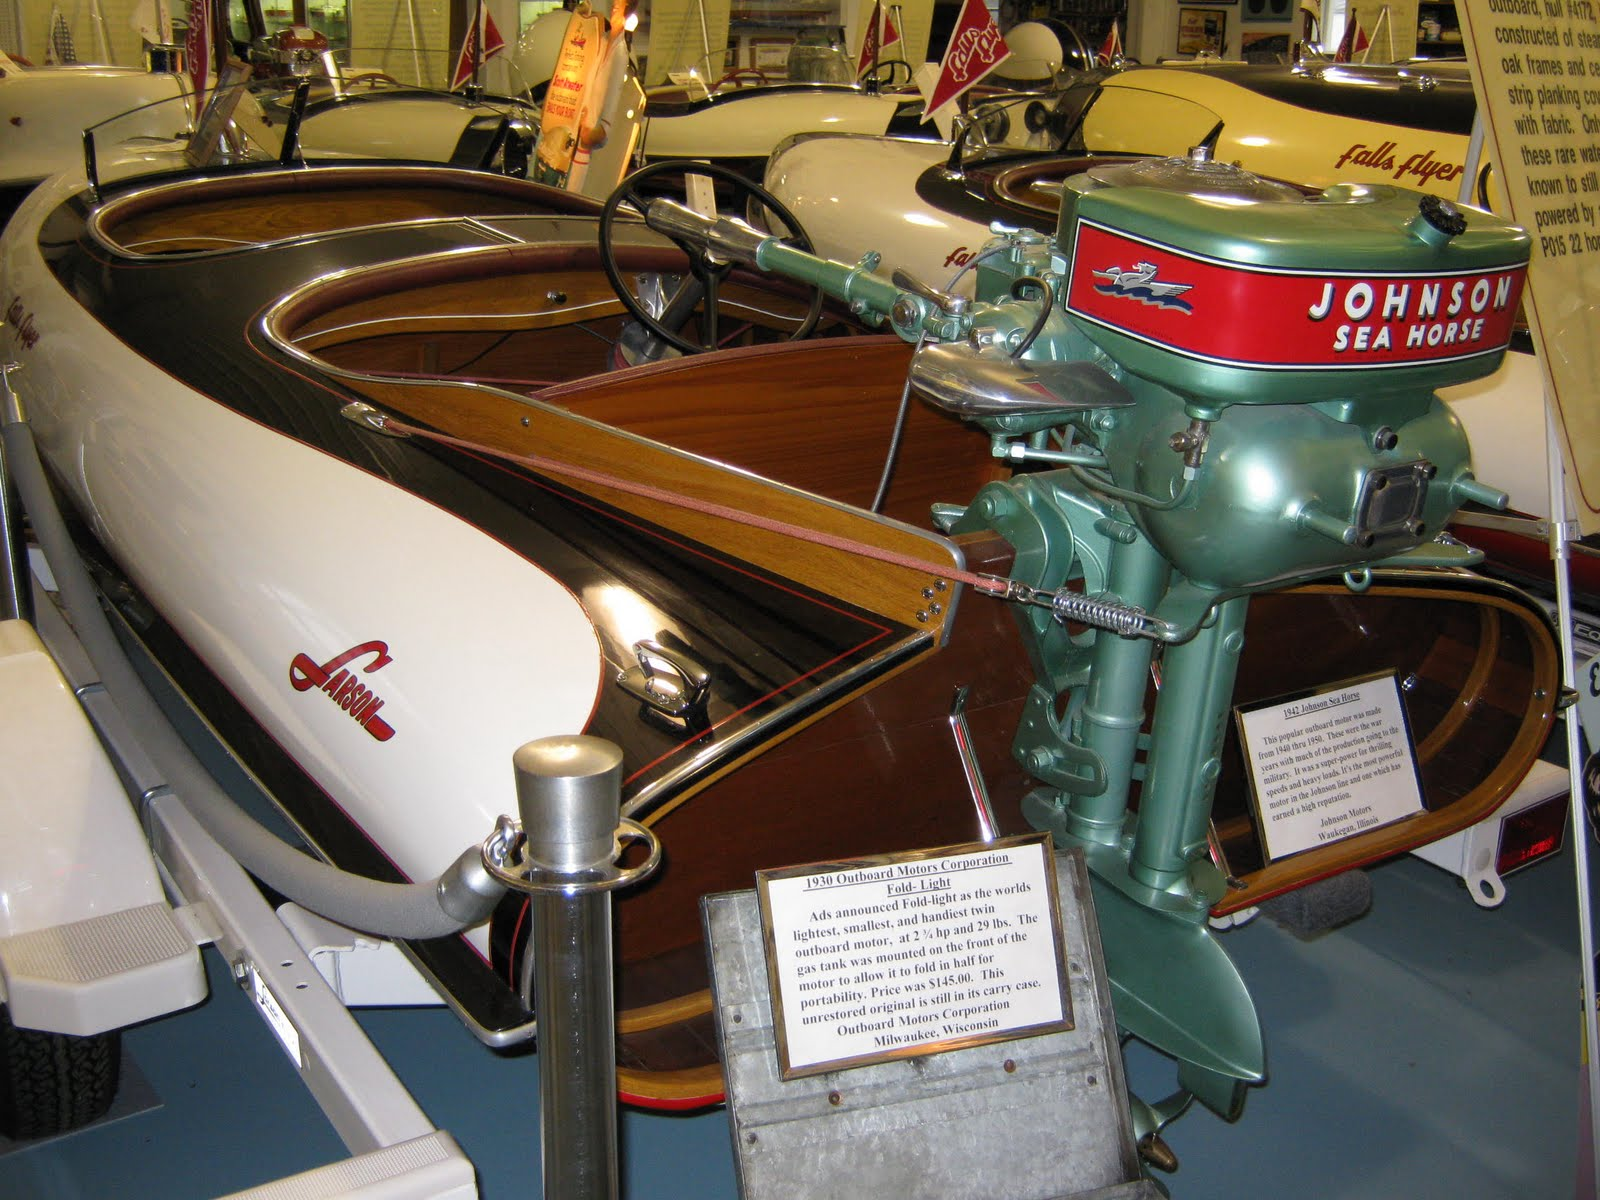 waukegan illinois and the outboard marine Johnson outboard motors waukegan,  boatersbookcom is the most trusted source for finding marinas and marine businesses including boat yards, boat equipment, boat.